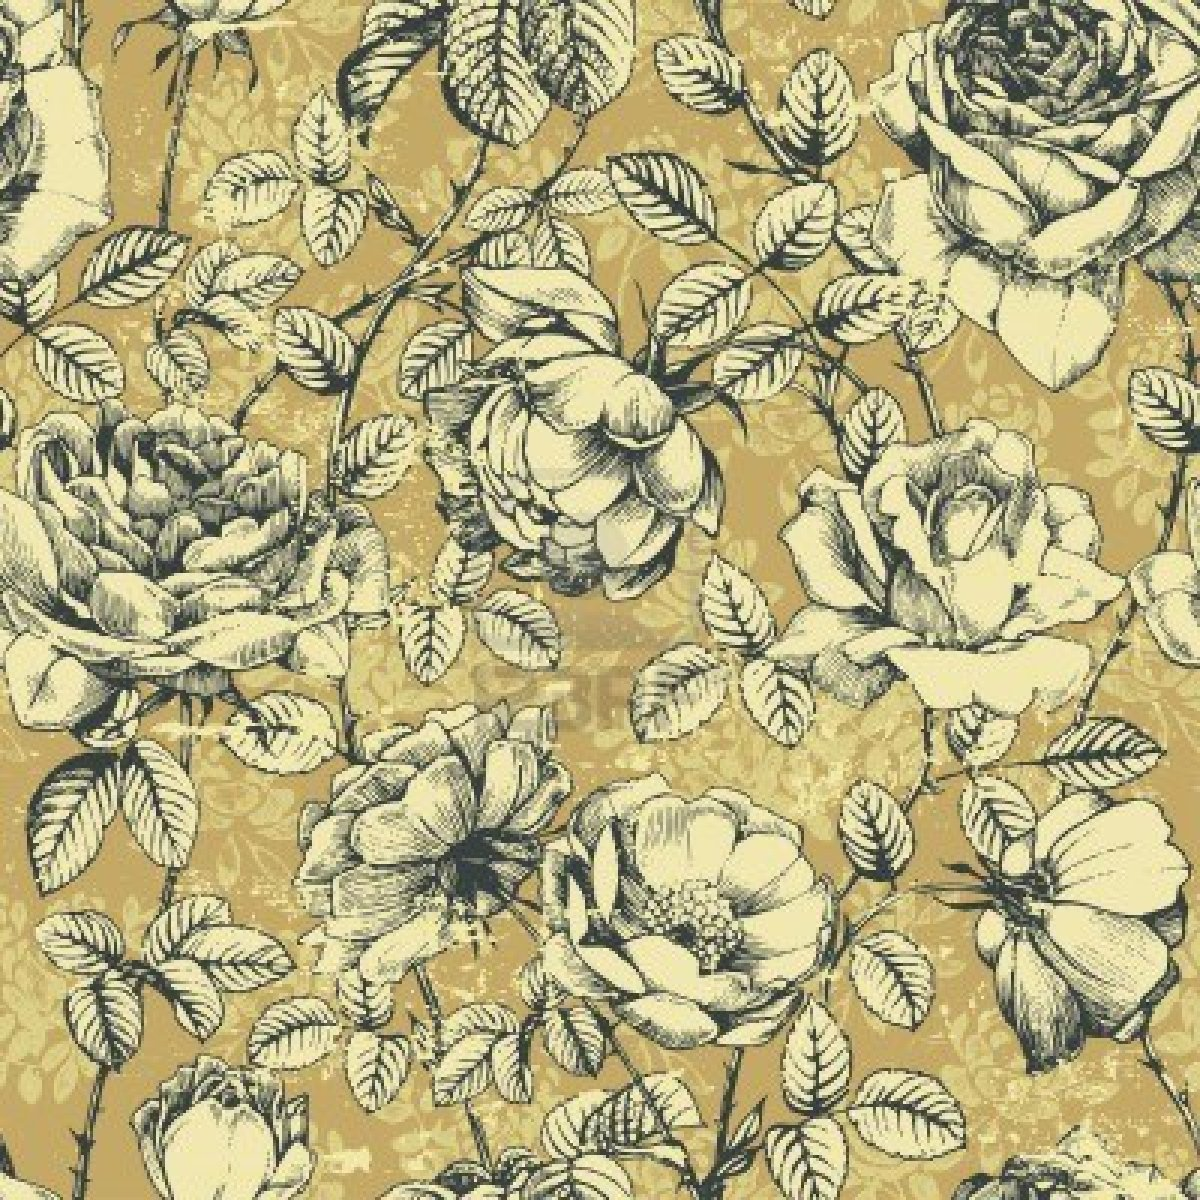 Vintage Flower Patterns